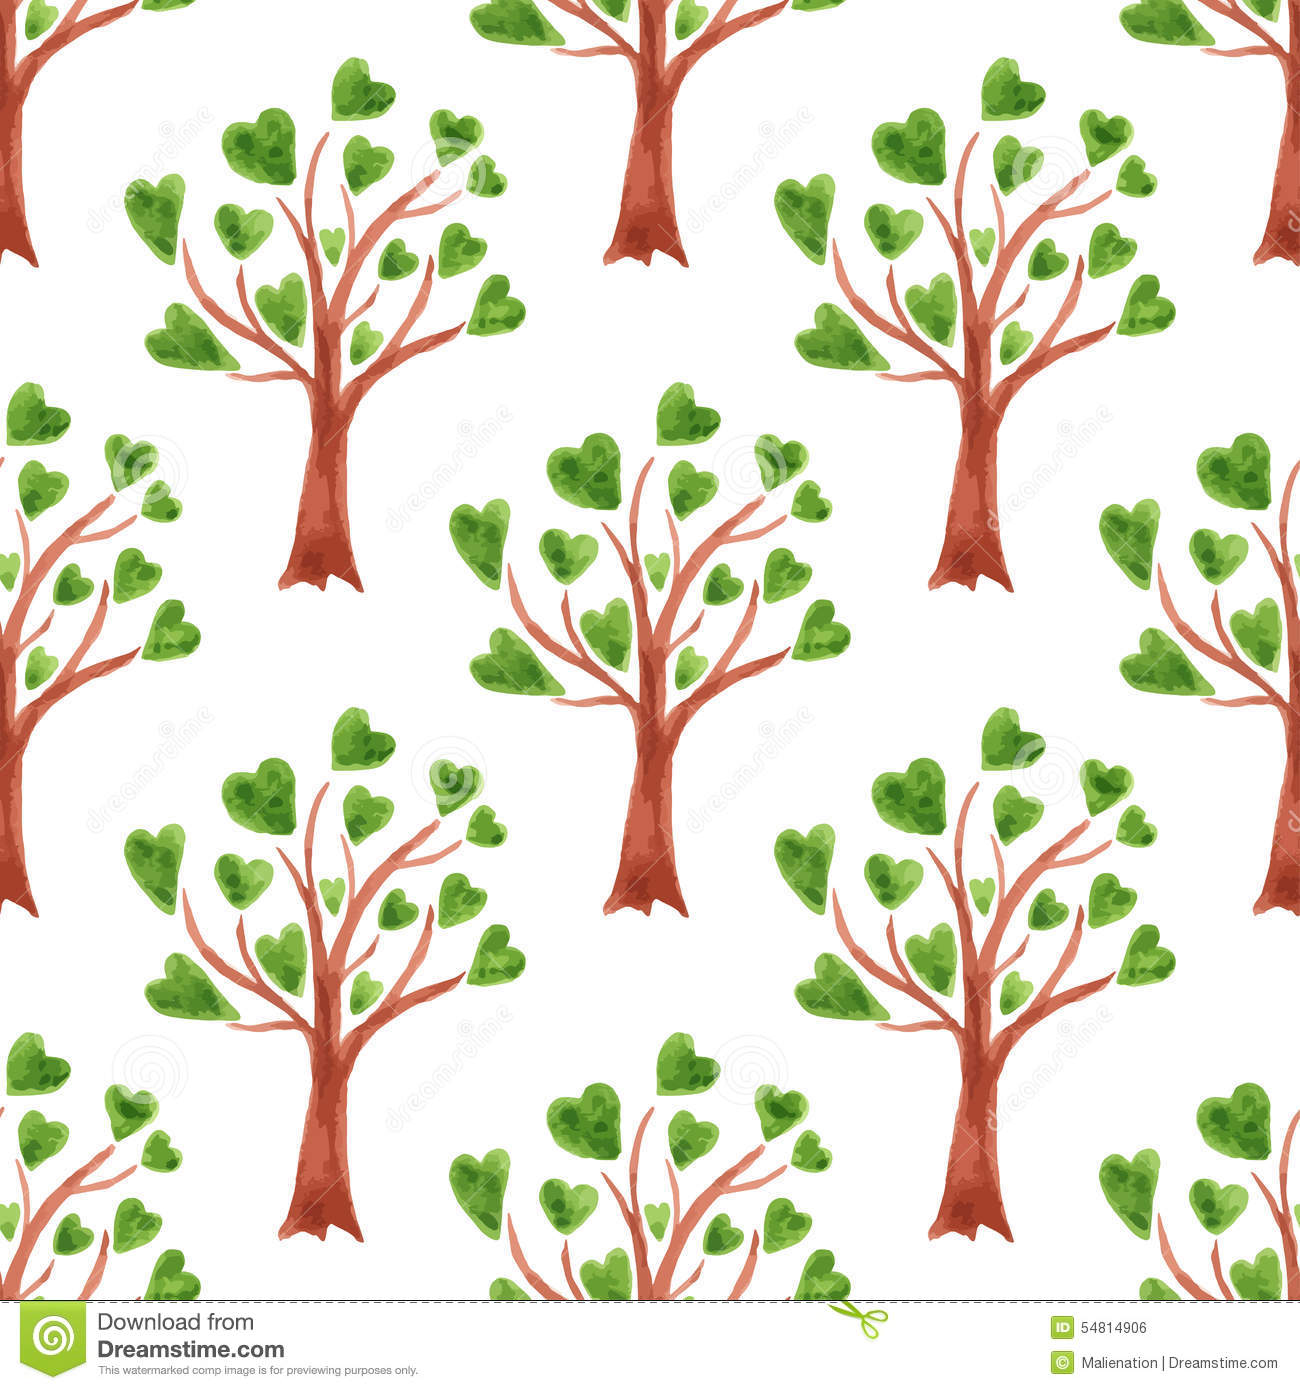 Fabric tree pattern - Vector Watercolor Trees Seamless Pattern Trees With Leaves In Hearts Can Be Used For